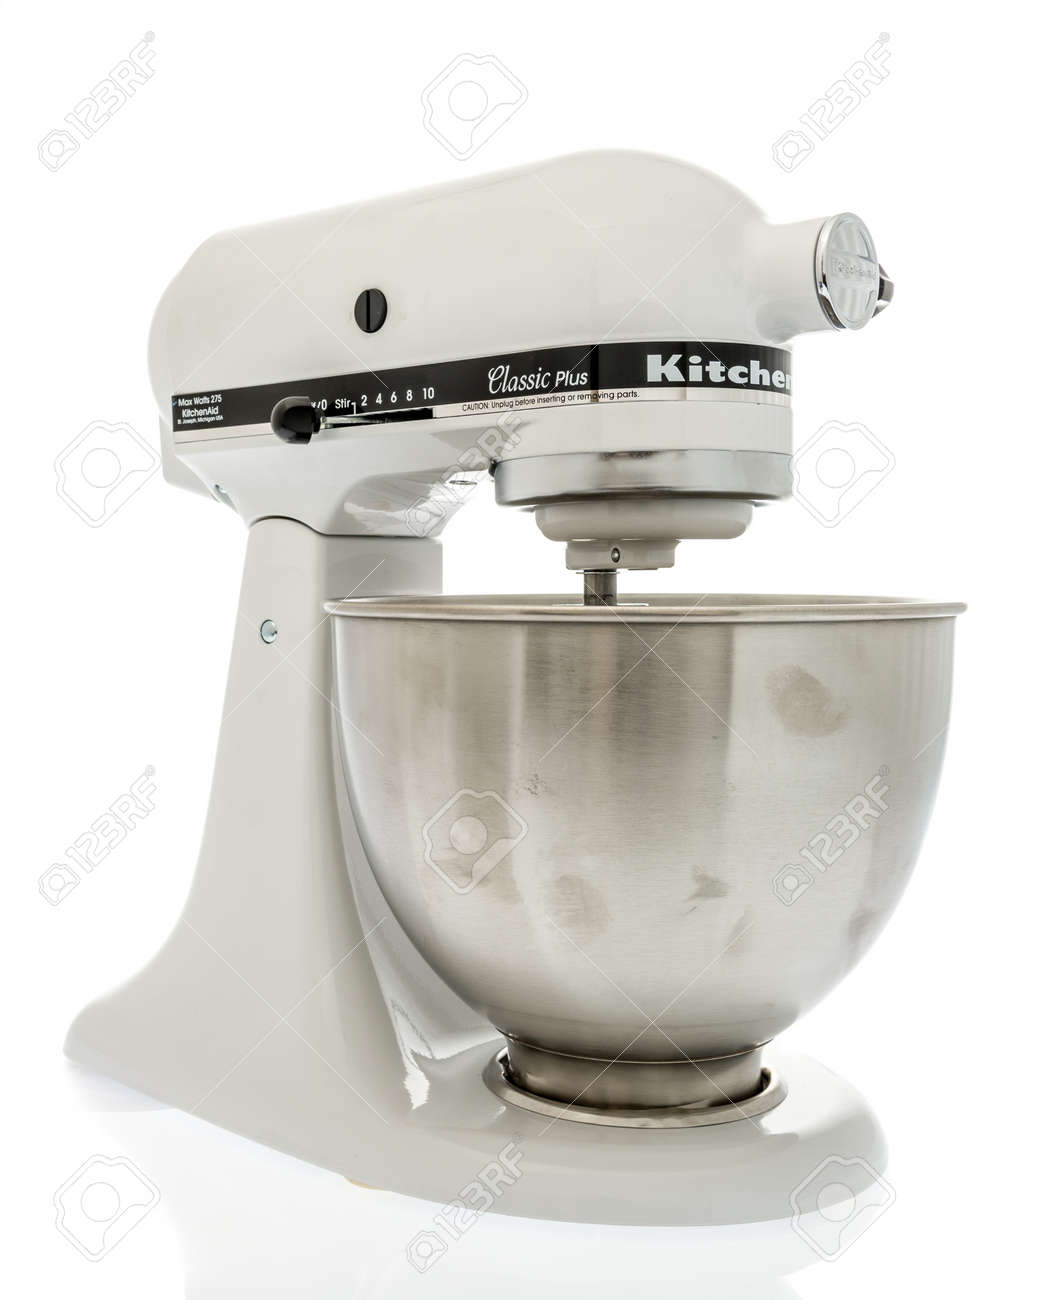 kitchen aid classic plus kitchenaid winneconne wi 14 october 2018 a white mixer stock photo on an isolated background